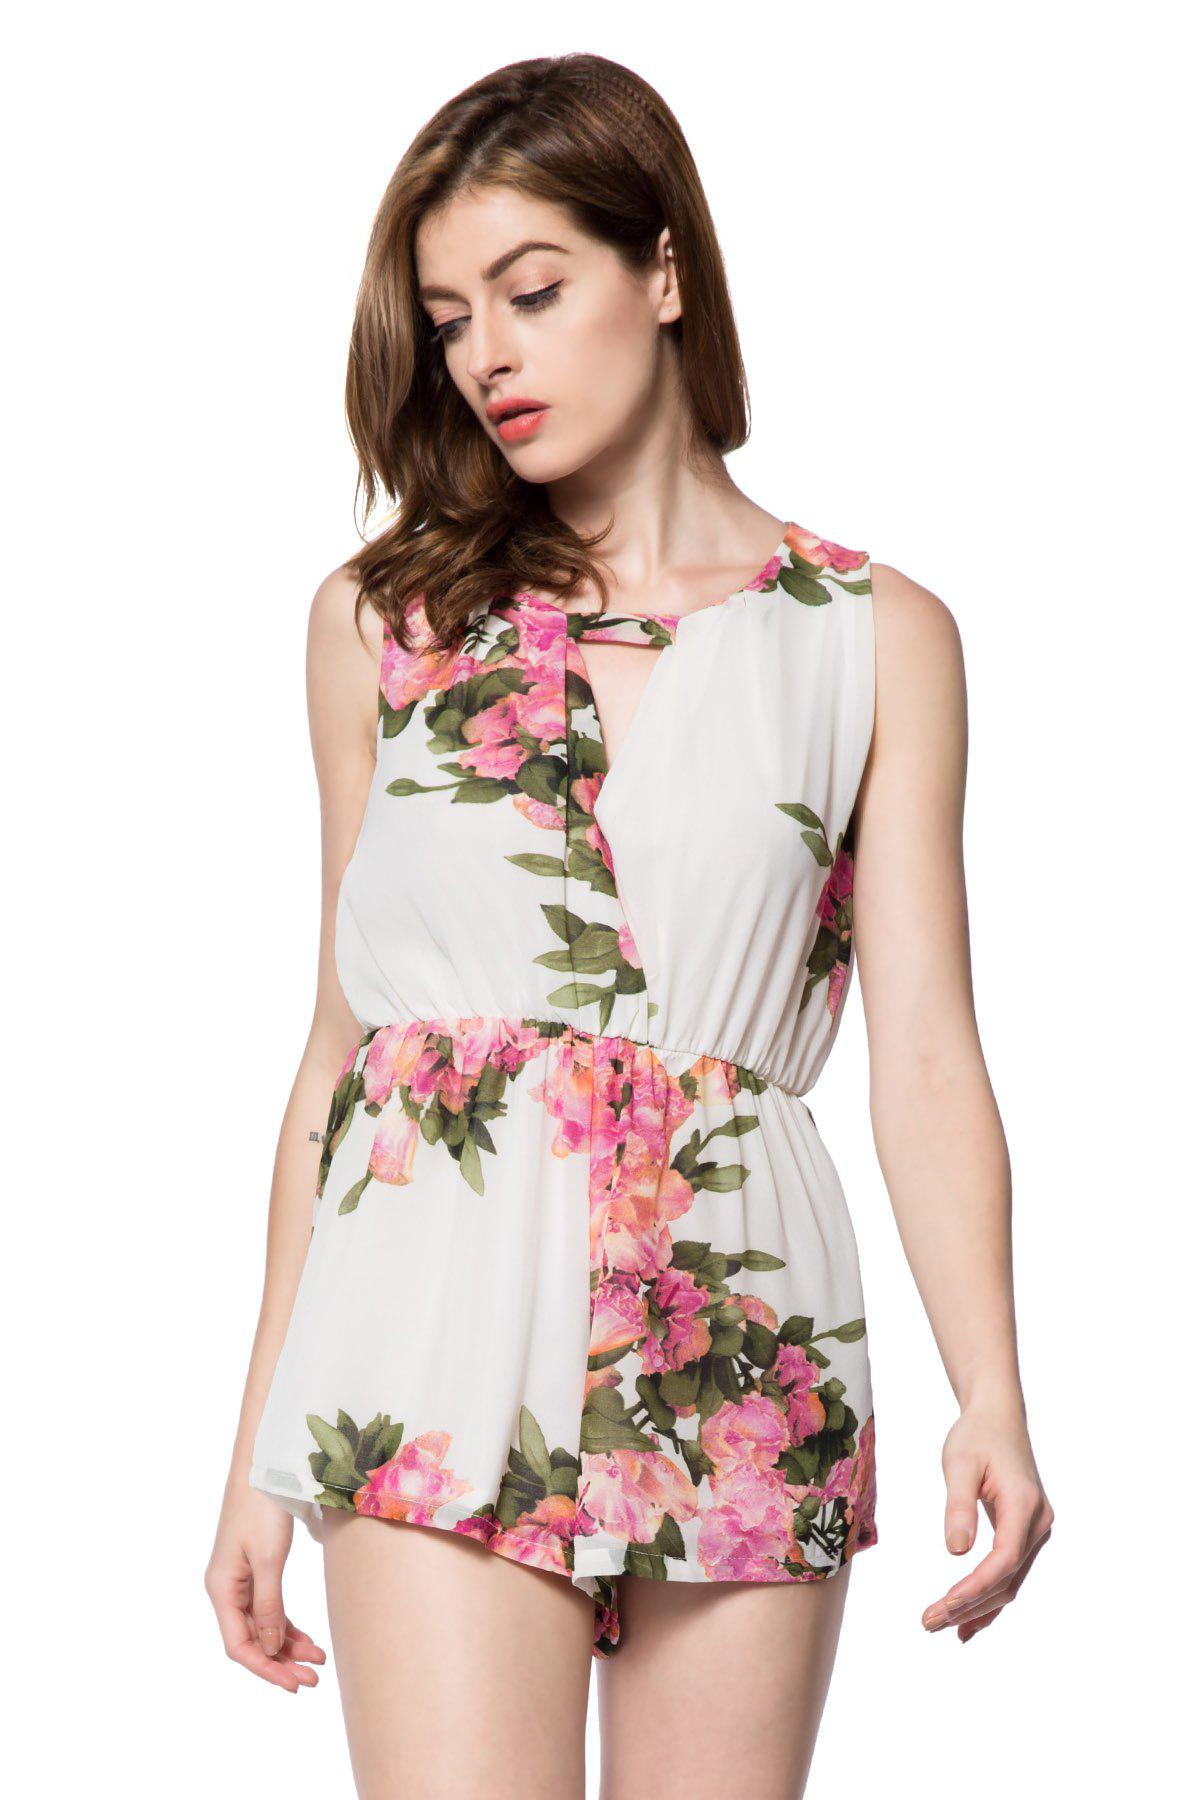 Stylish Scoop Collar Sleeveless Hollow Out Floral Print Women's Romper - WHITE M